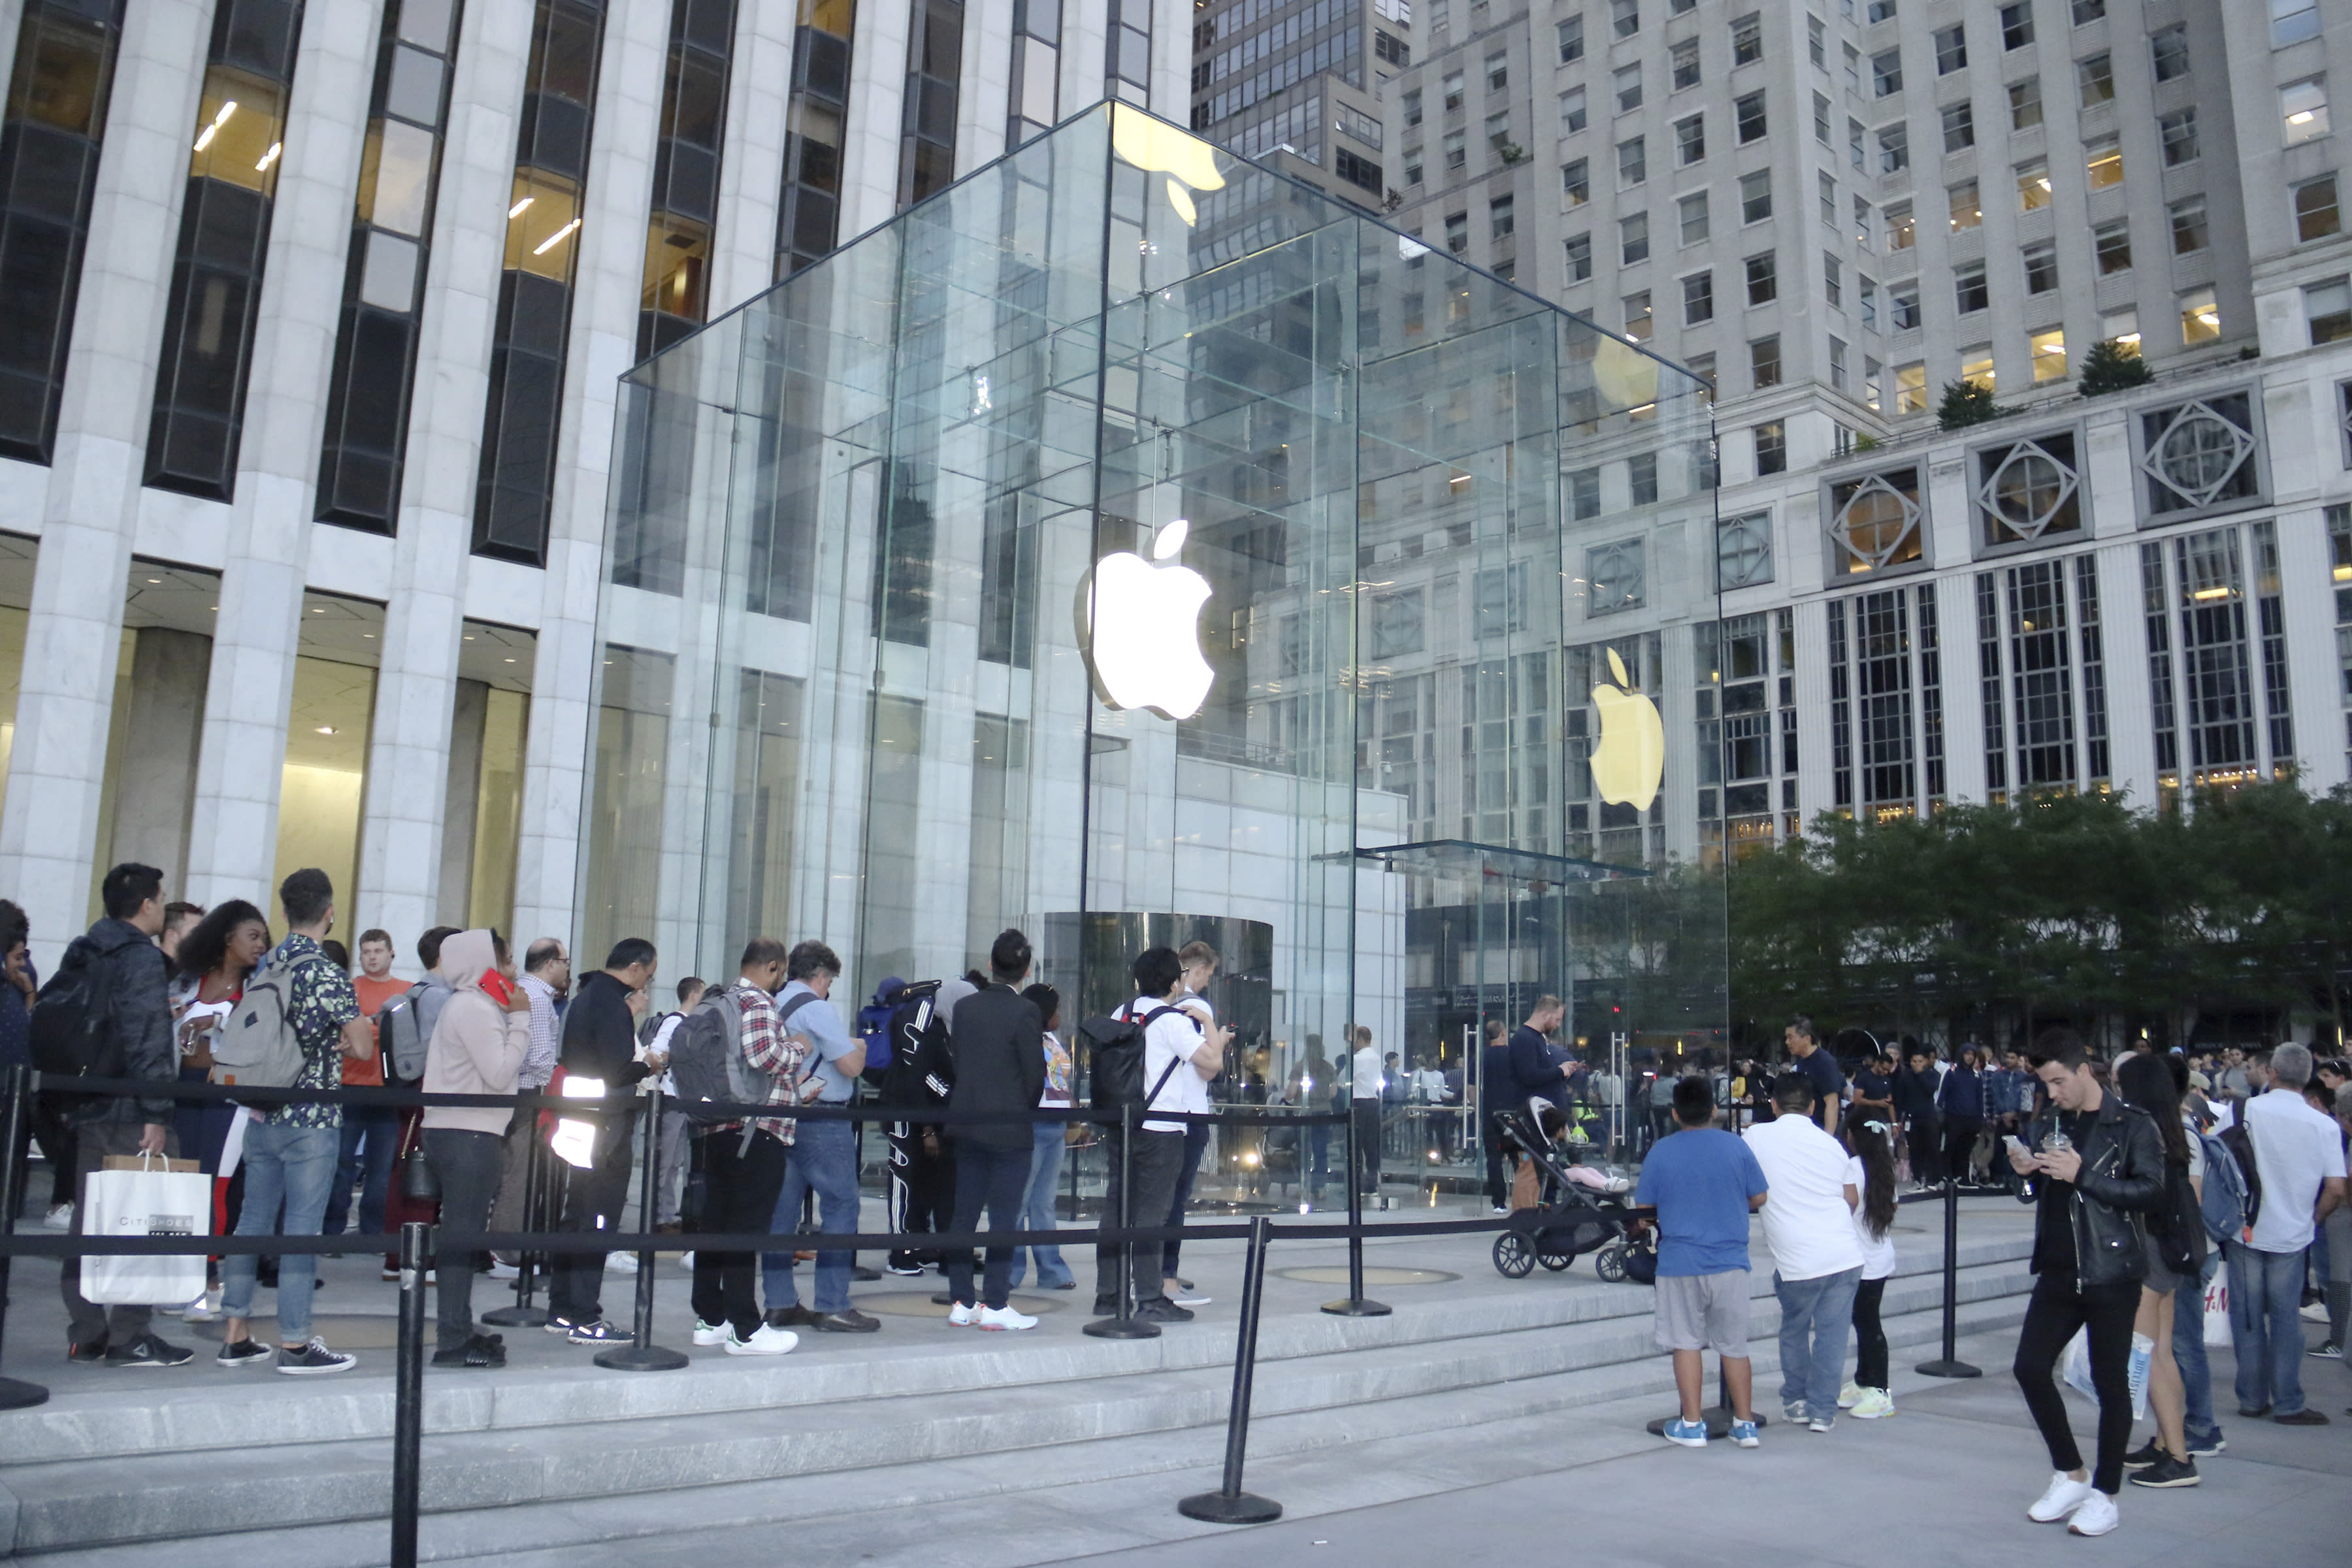 Why 'you're not wrong' to sell some Apple stock, but better to hold